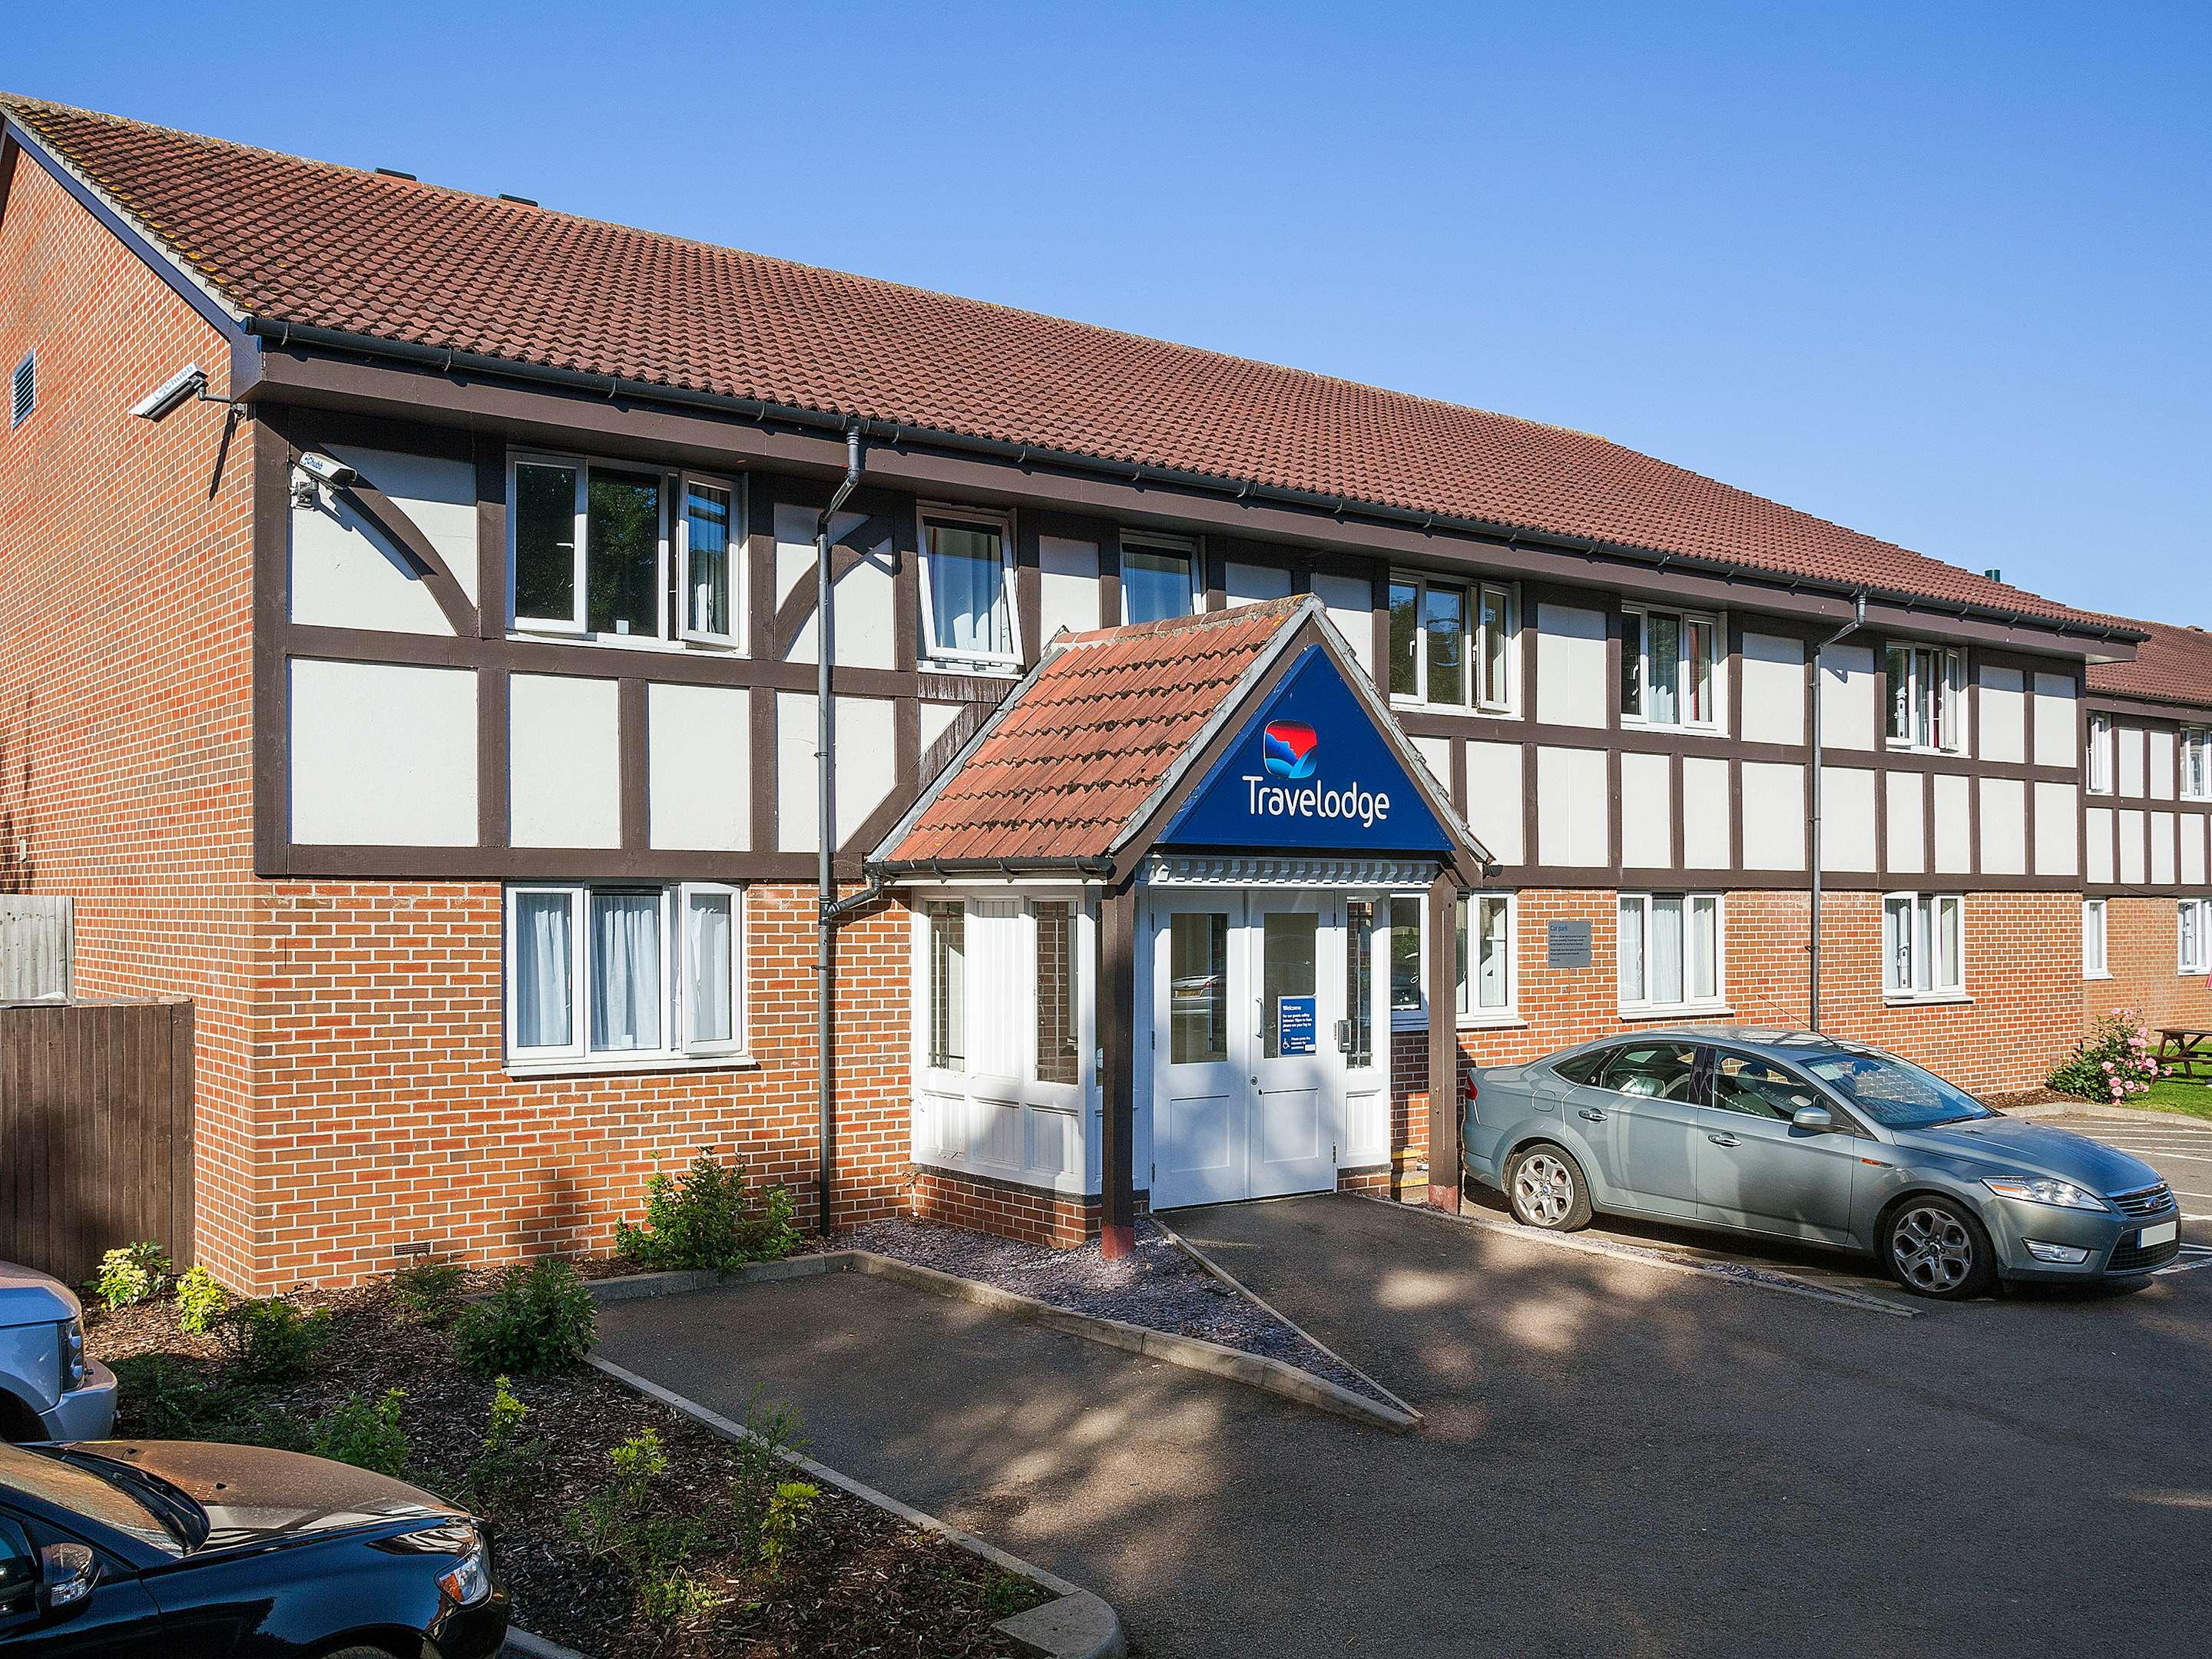 Travelodge Bedford Goldington Road